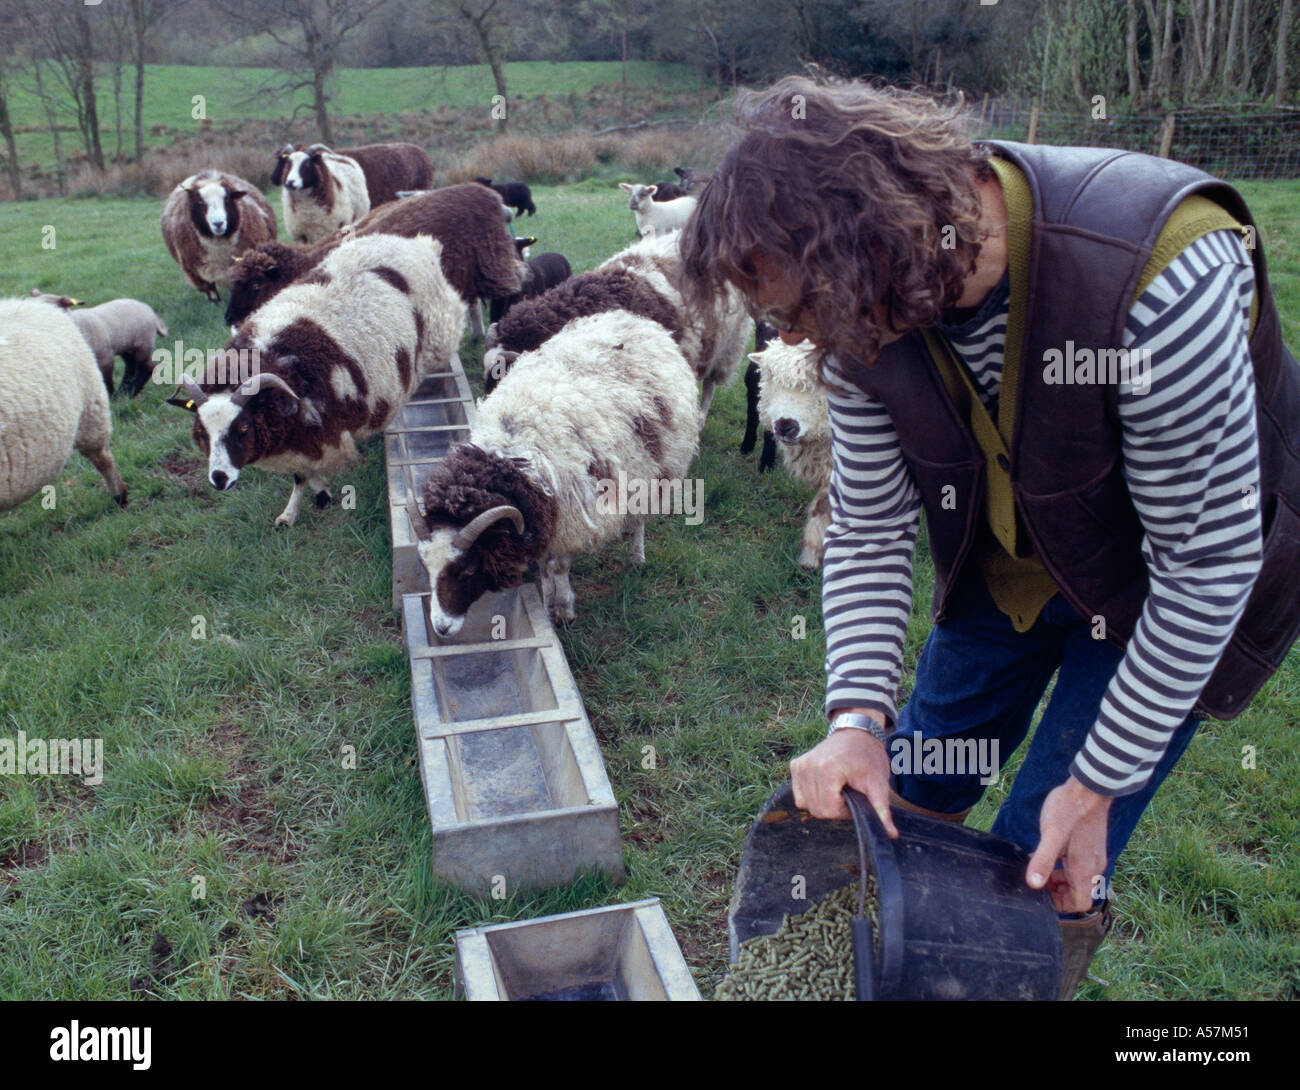 Hugh Fearnley Whittingstall feeding sheep on farm in Somerset Keywords Location personality people - Stock Image